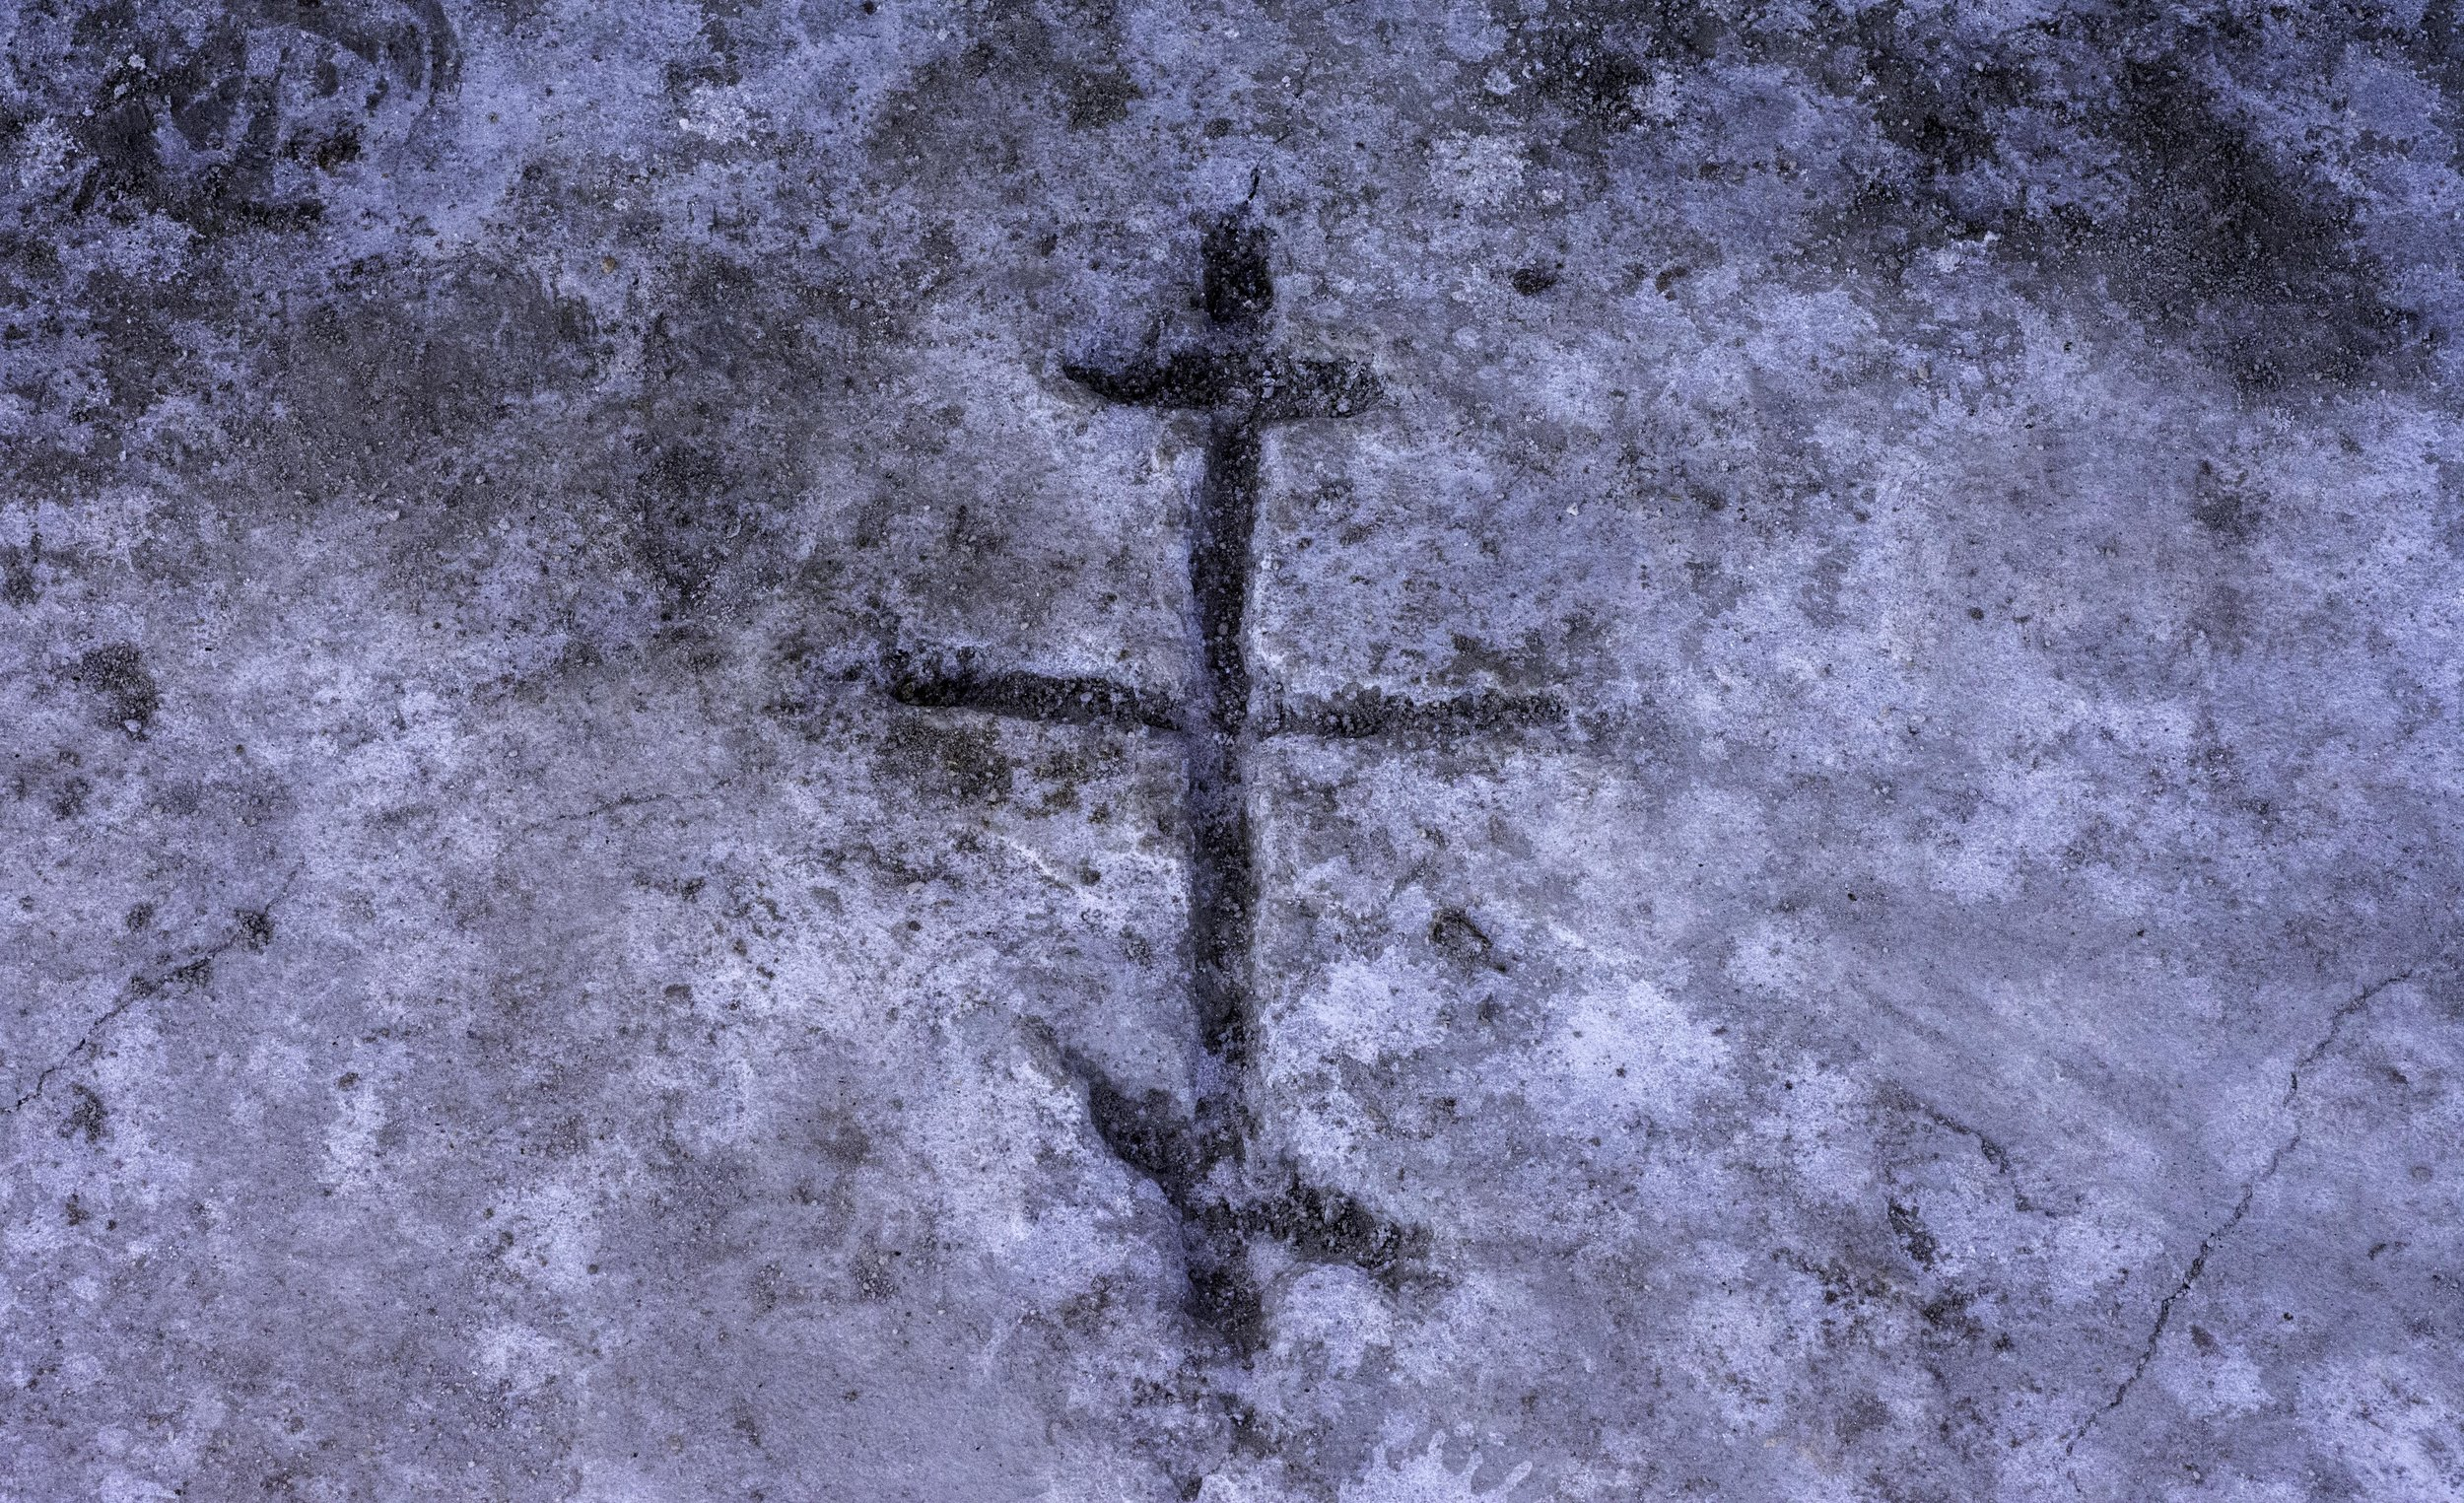 FrontStep-orthodox-cross.jpg